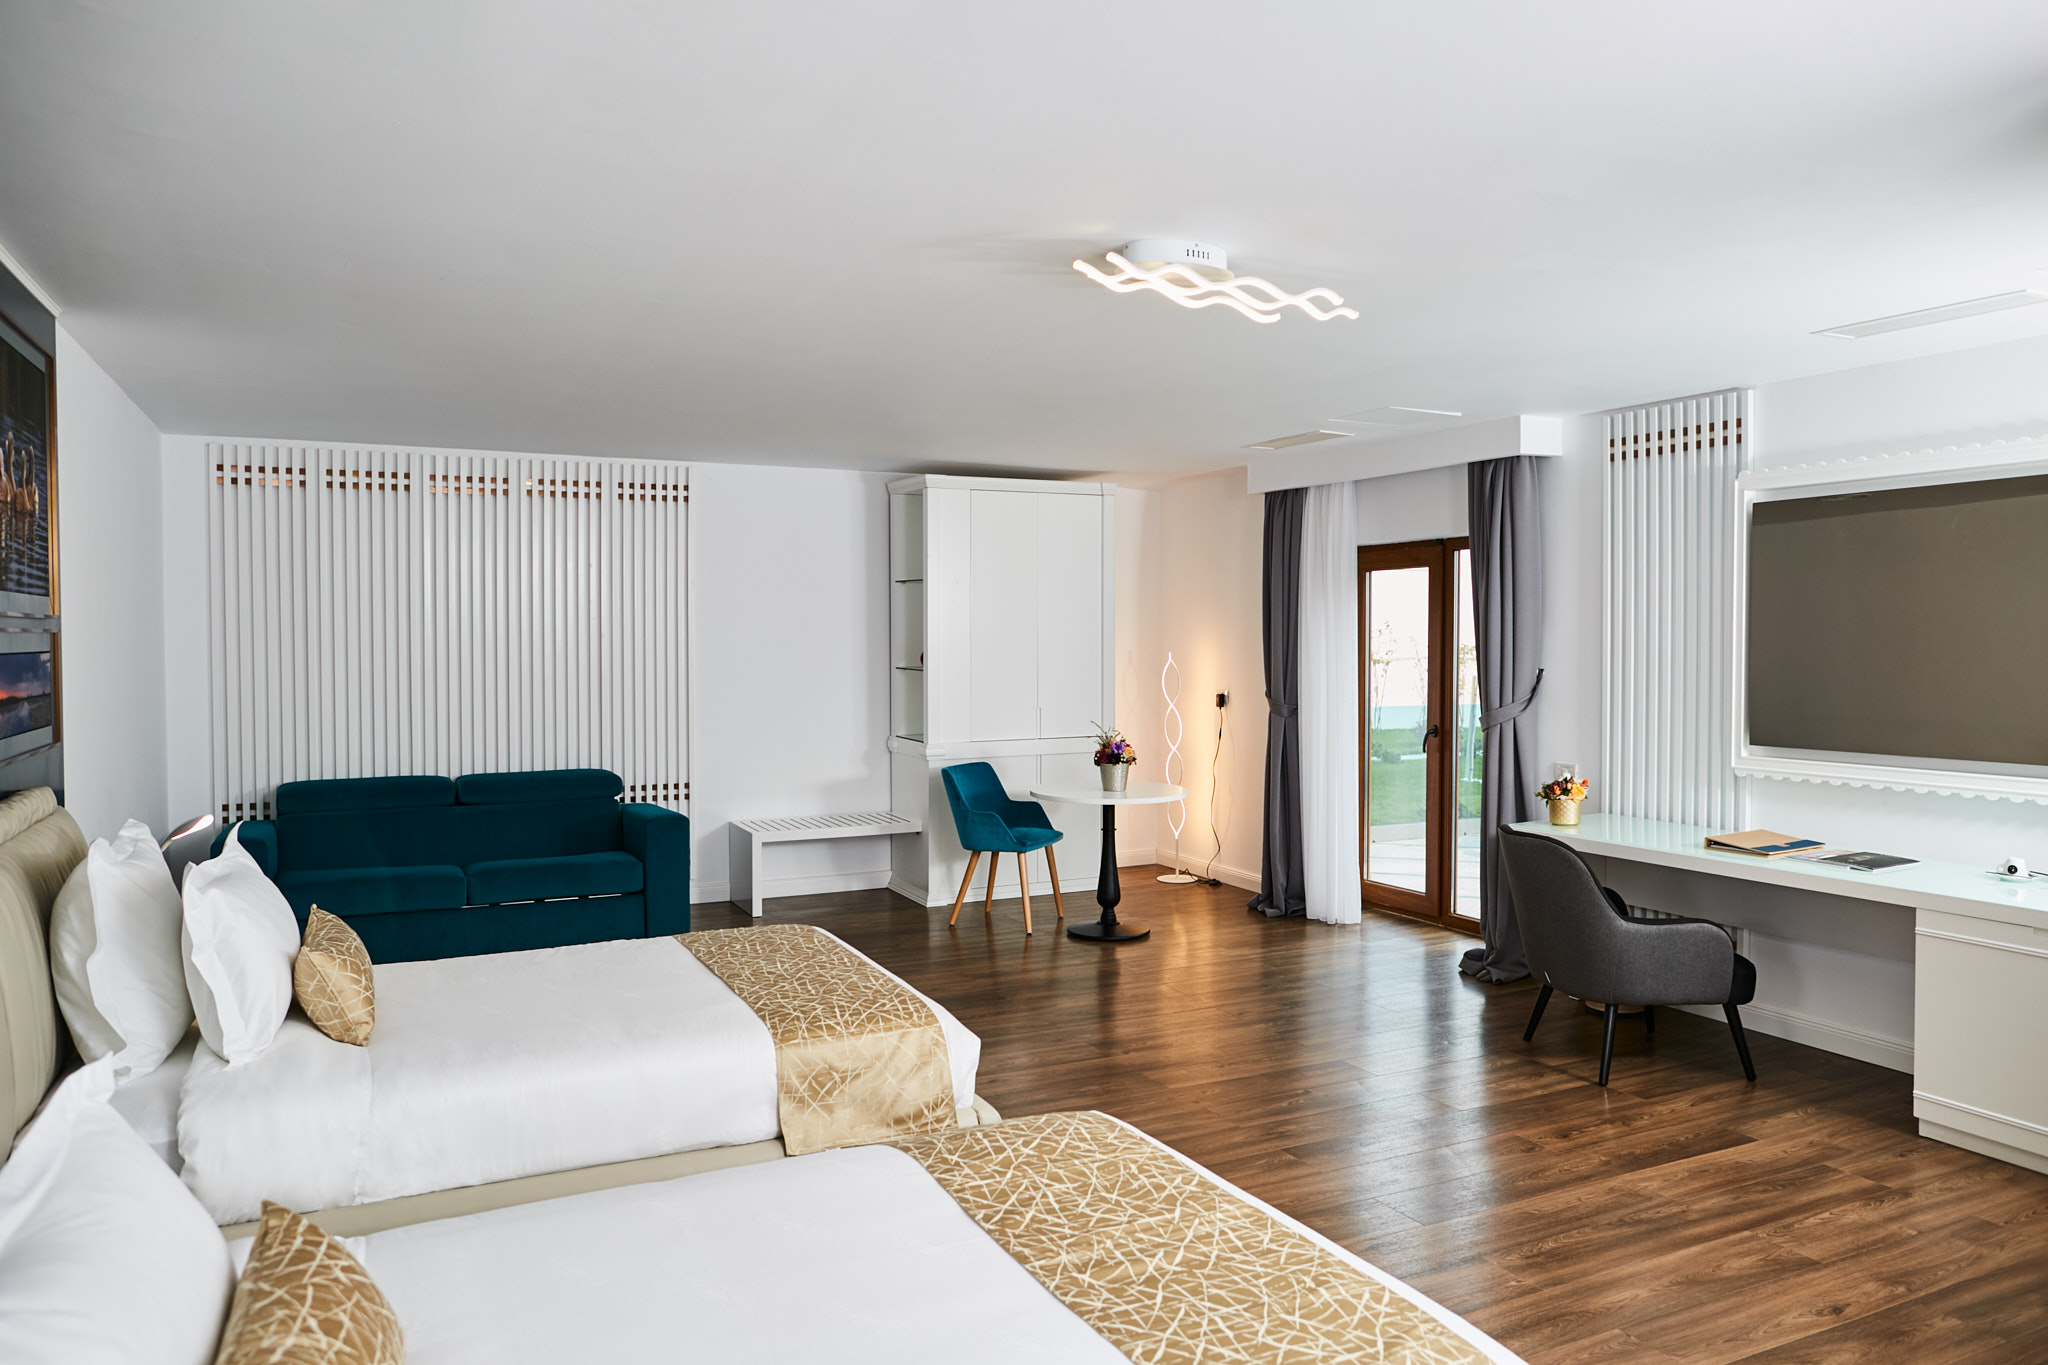 https://www.newlebadaresort.com/room/vip-garden-twin-room/